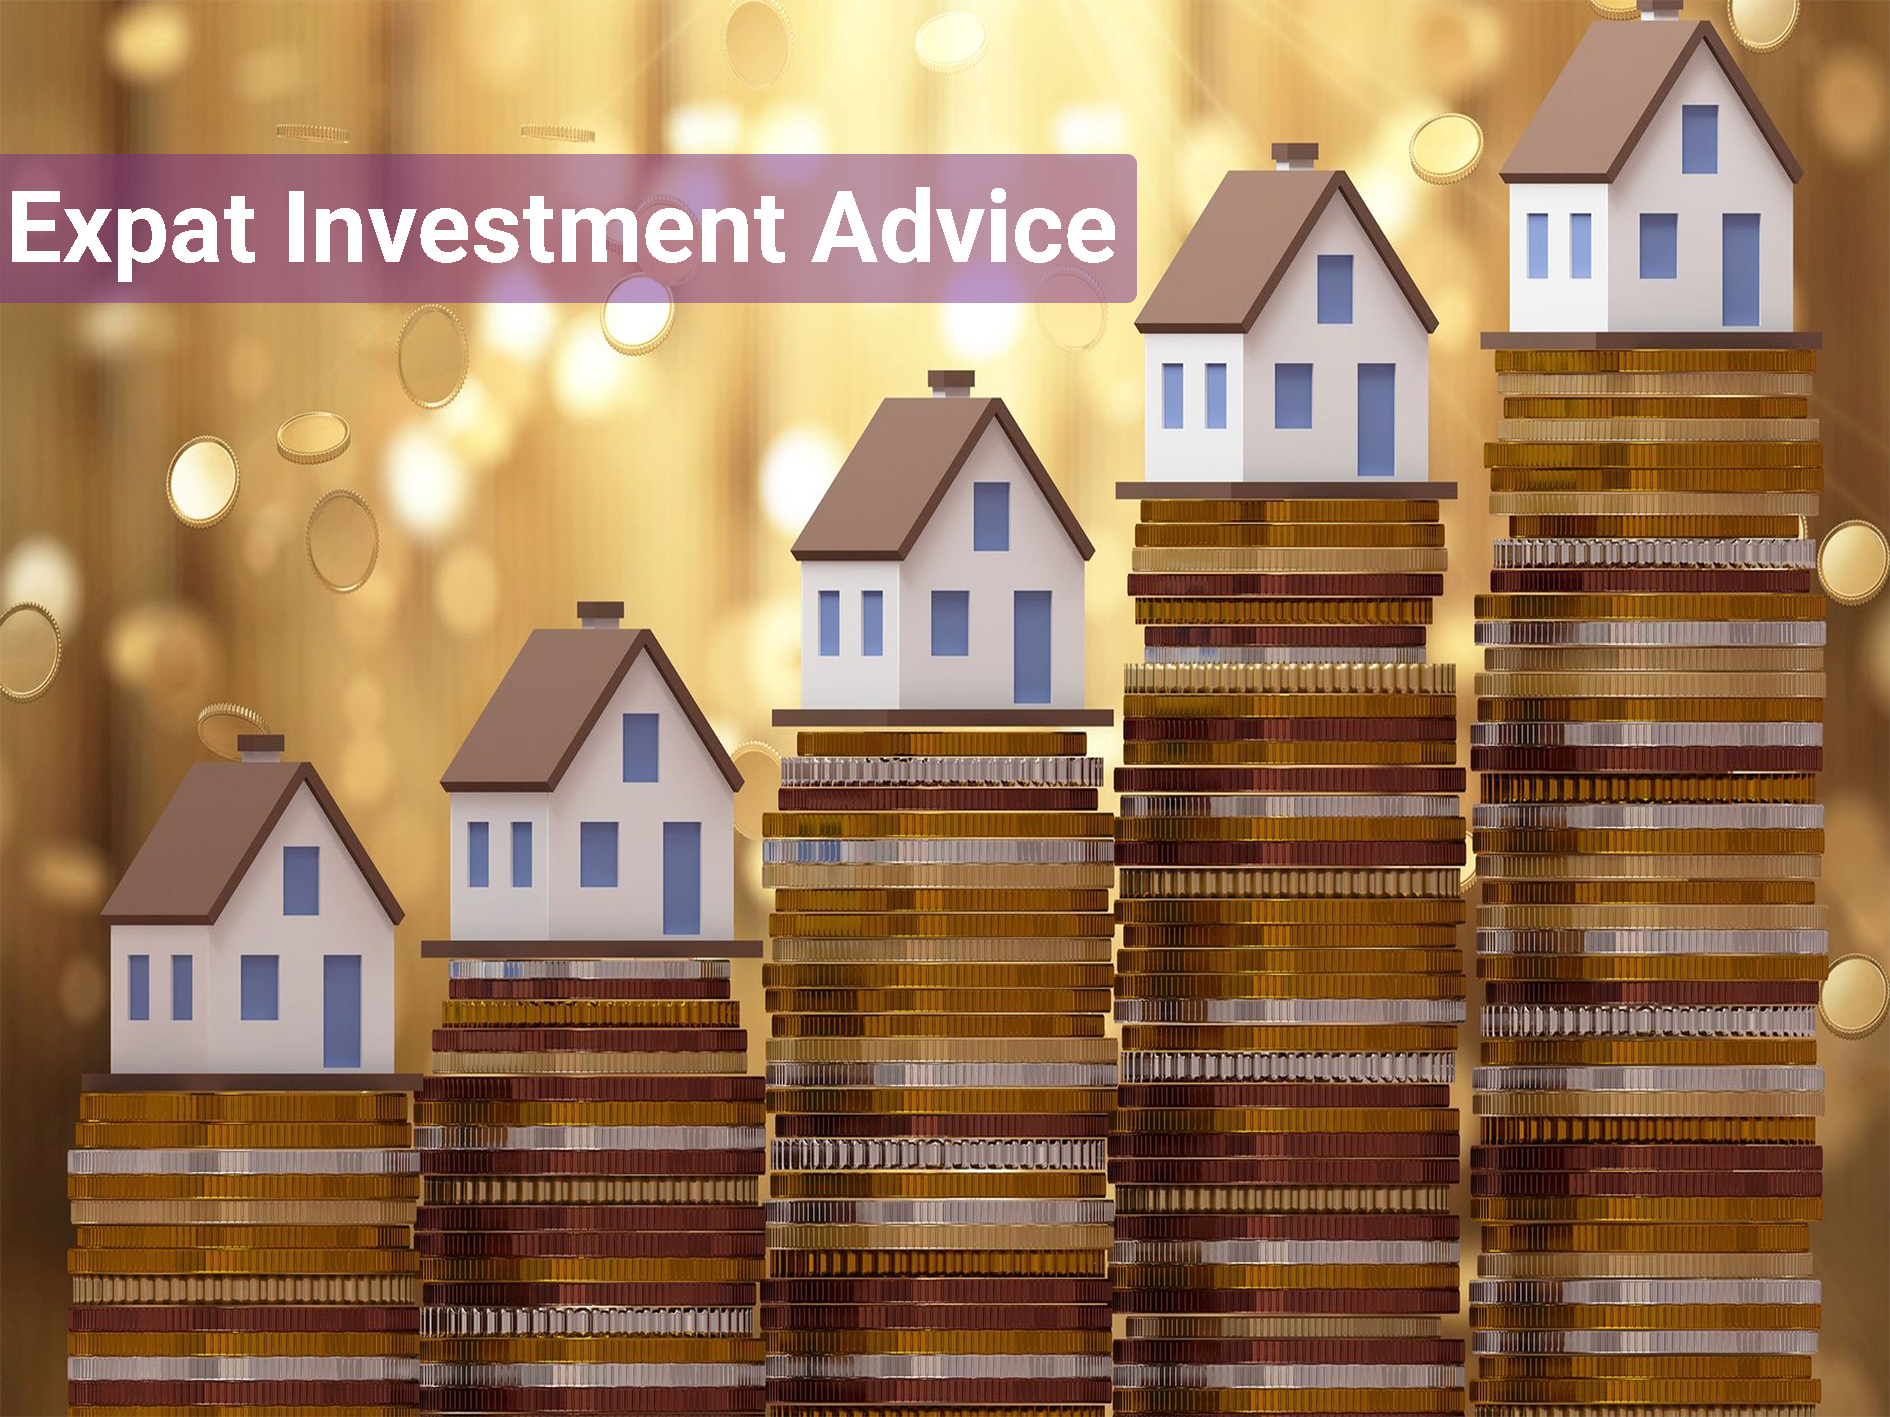 Expat Investment Advice